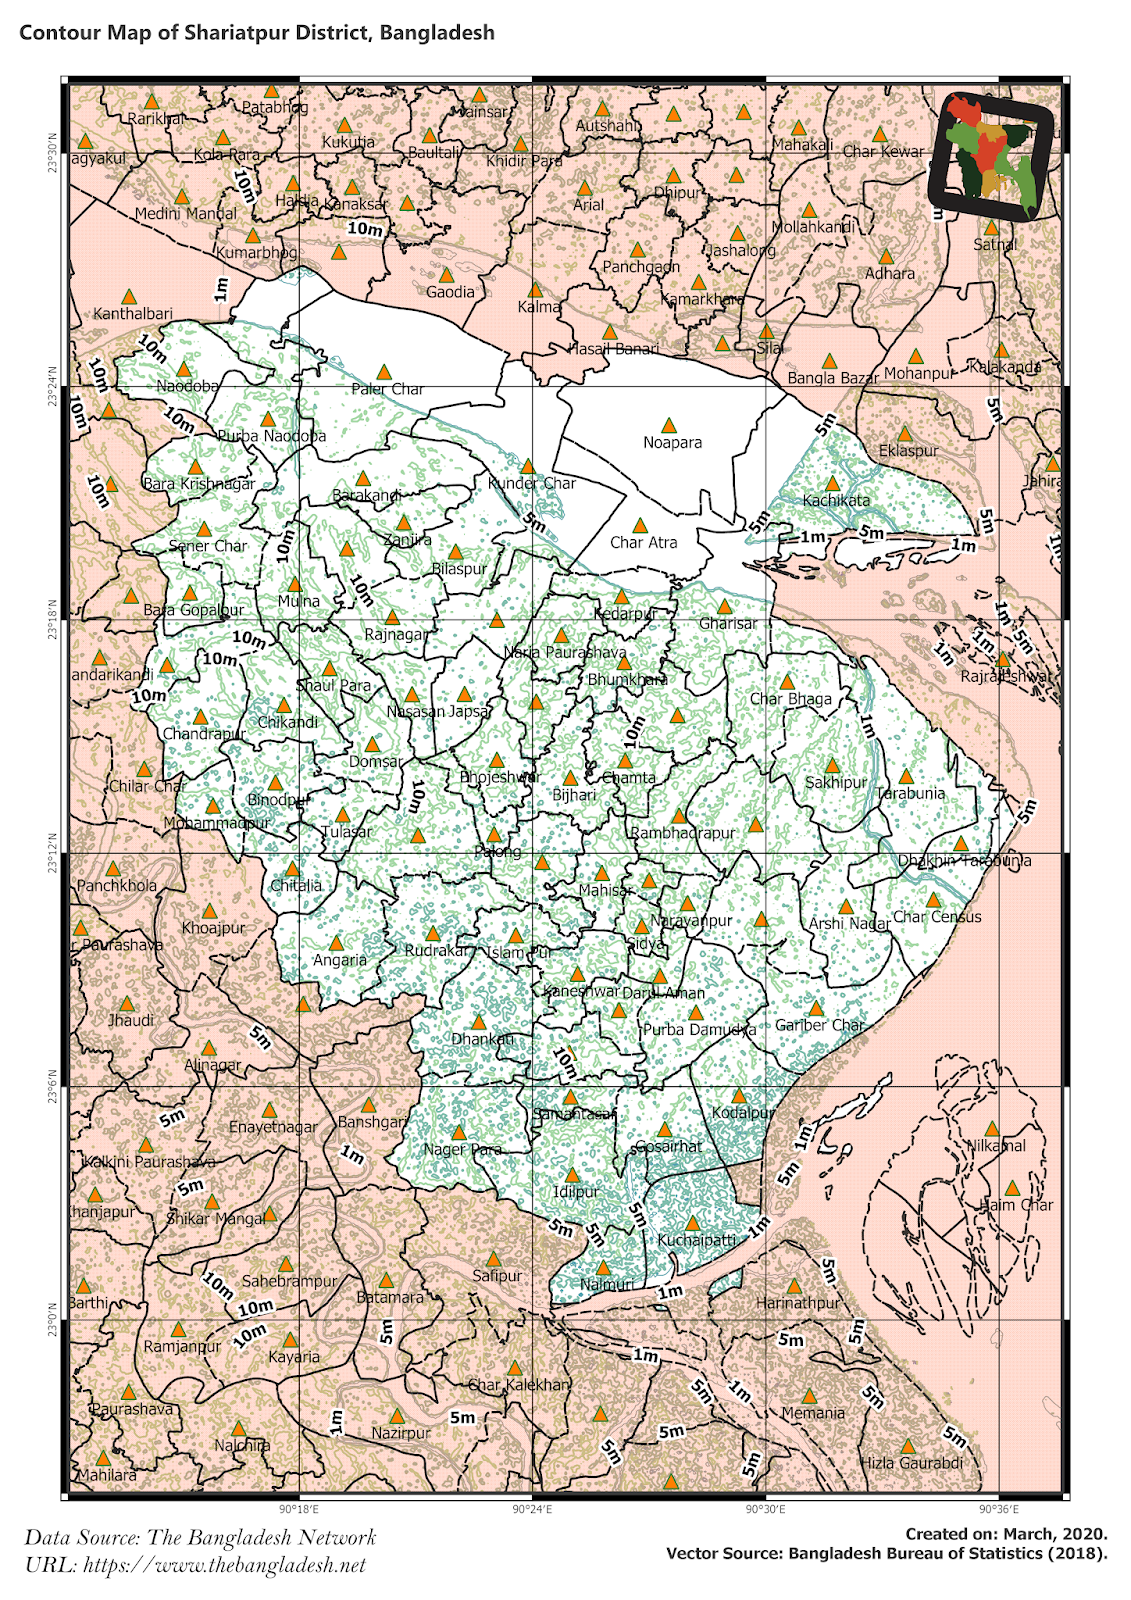 Elevation Map of Shariatpur District of Bangladesh